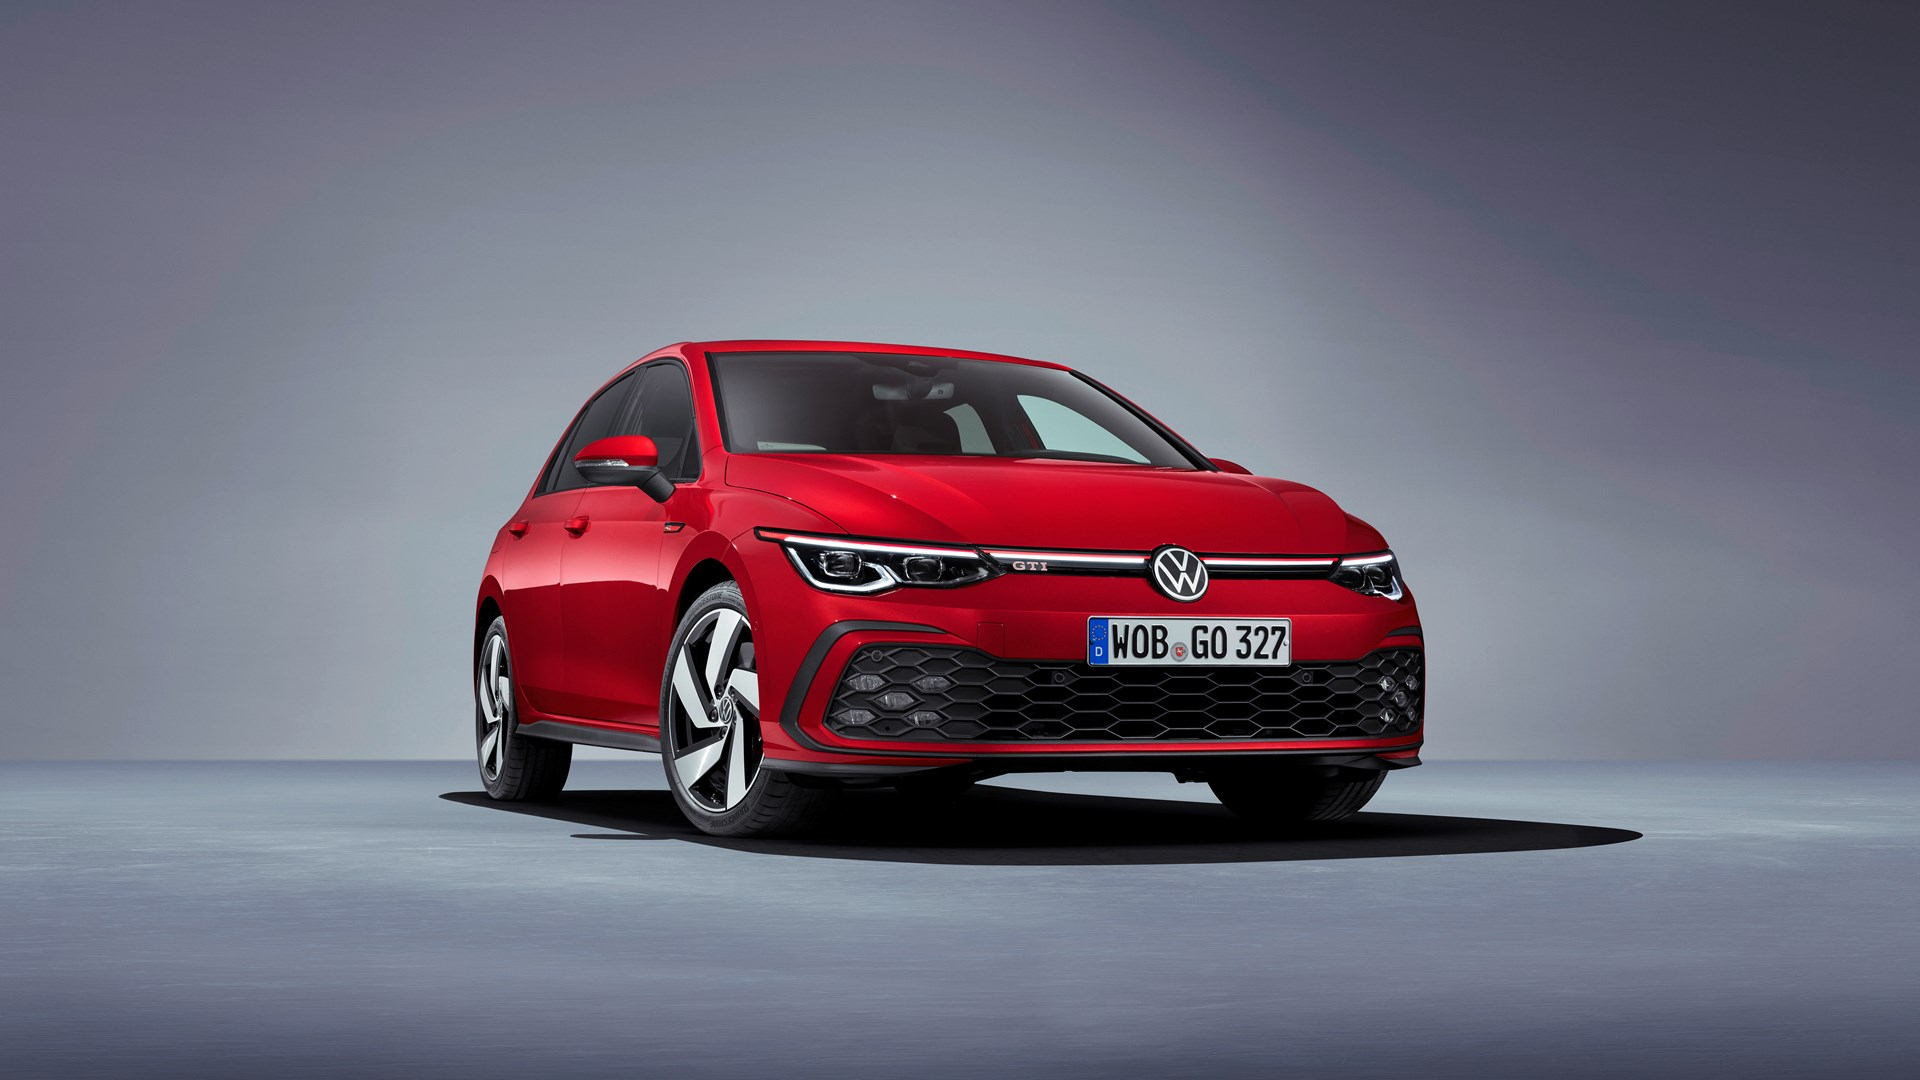 2022 Volkswagen Gti: 4 Things To Get Excited About - 2022 Volkswagen Golf Awd Automatic Performance, Redesign